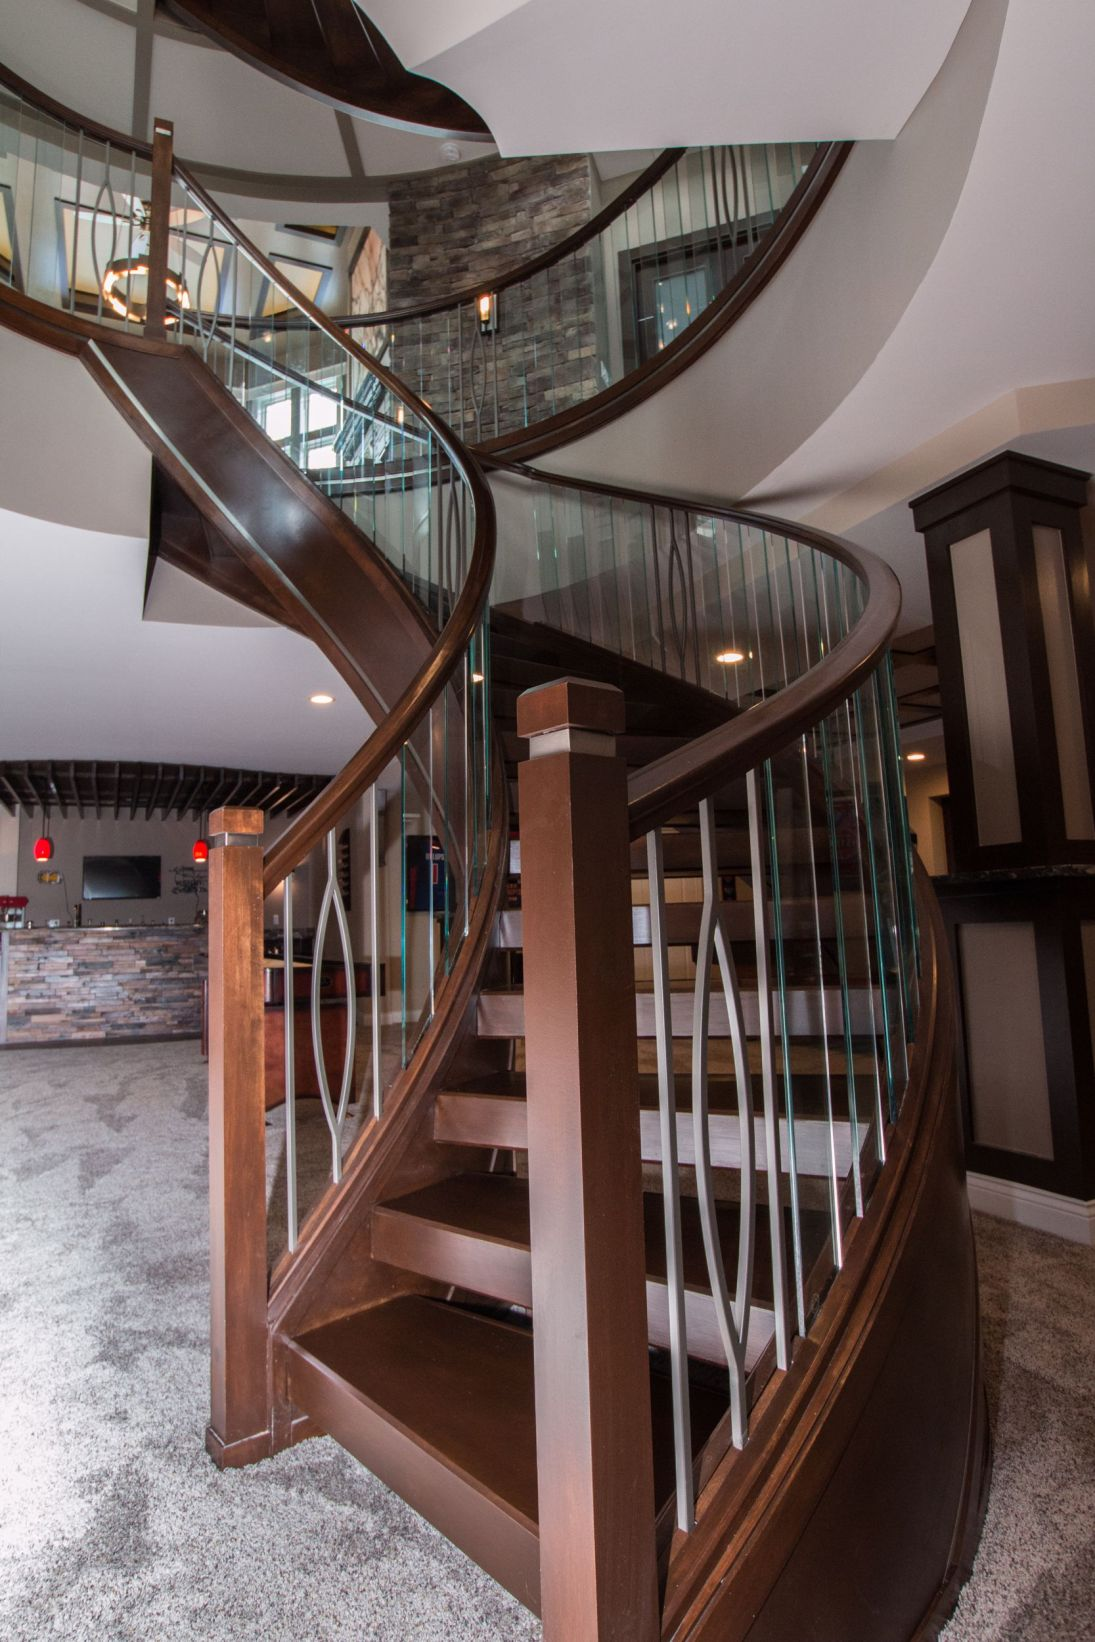 Wood newel post with a mix of glass and metal balusters wind around a curved wood staircase